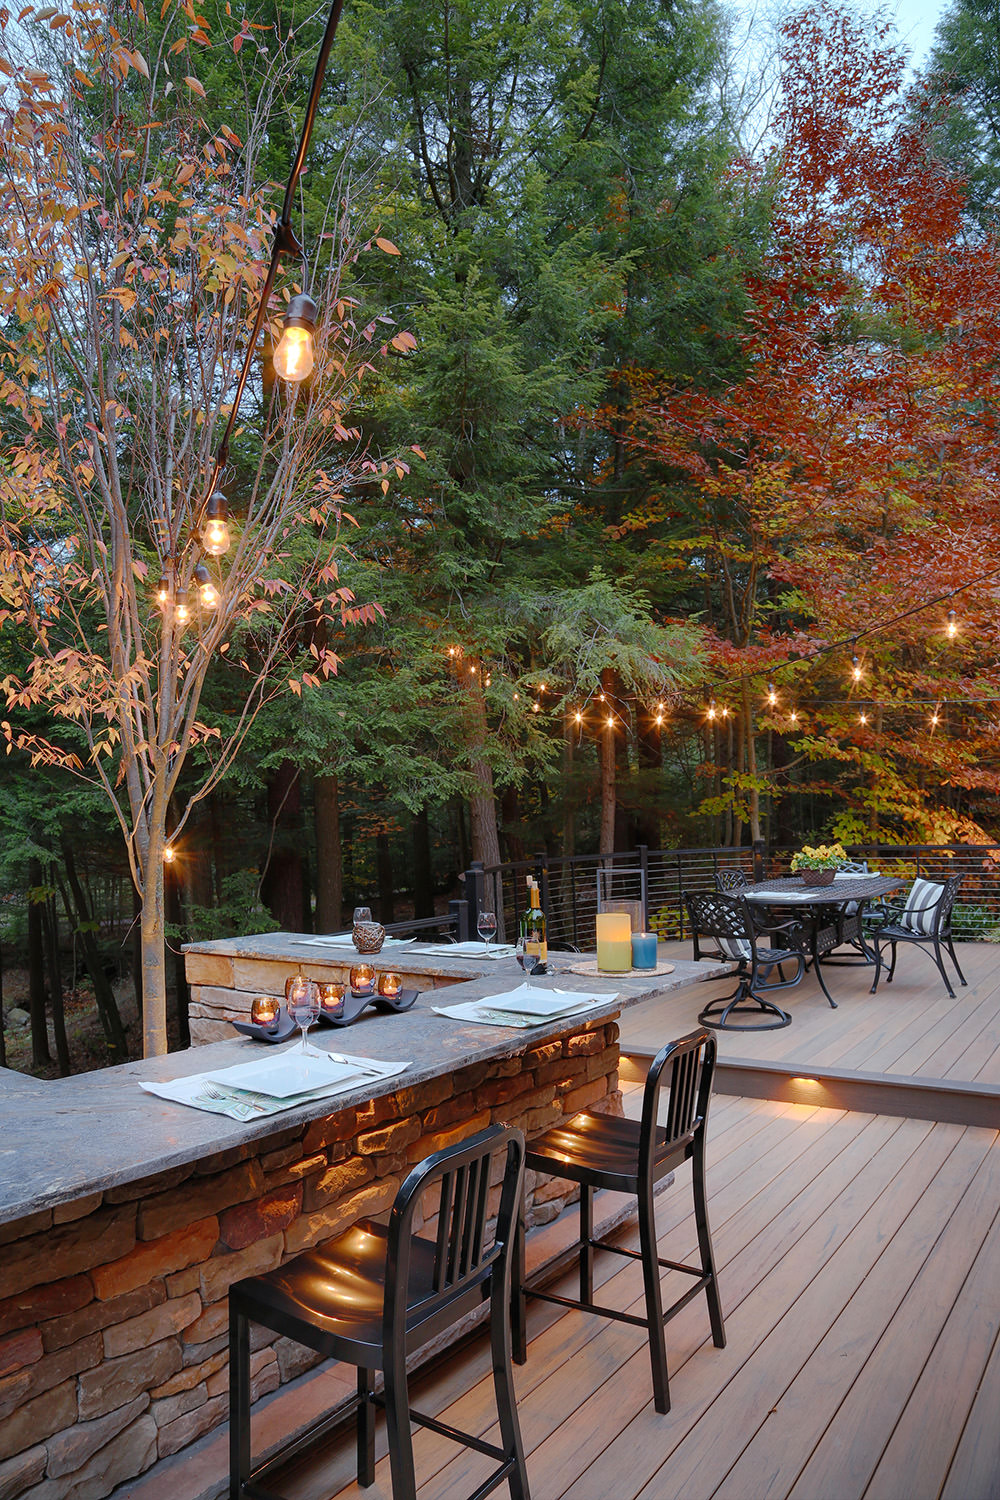 We were able to construct the new deck almost to the edge of the woods, designing the centrally located U-shaped stone bar as the focal point for entertainment.